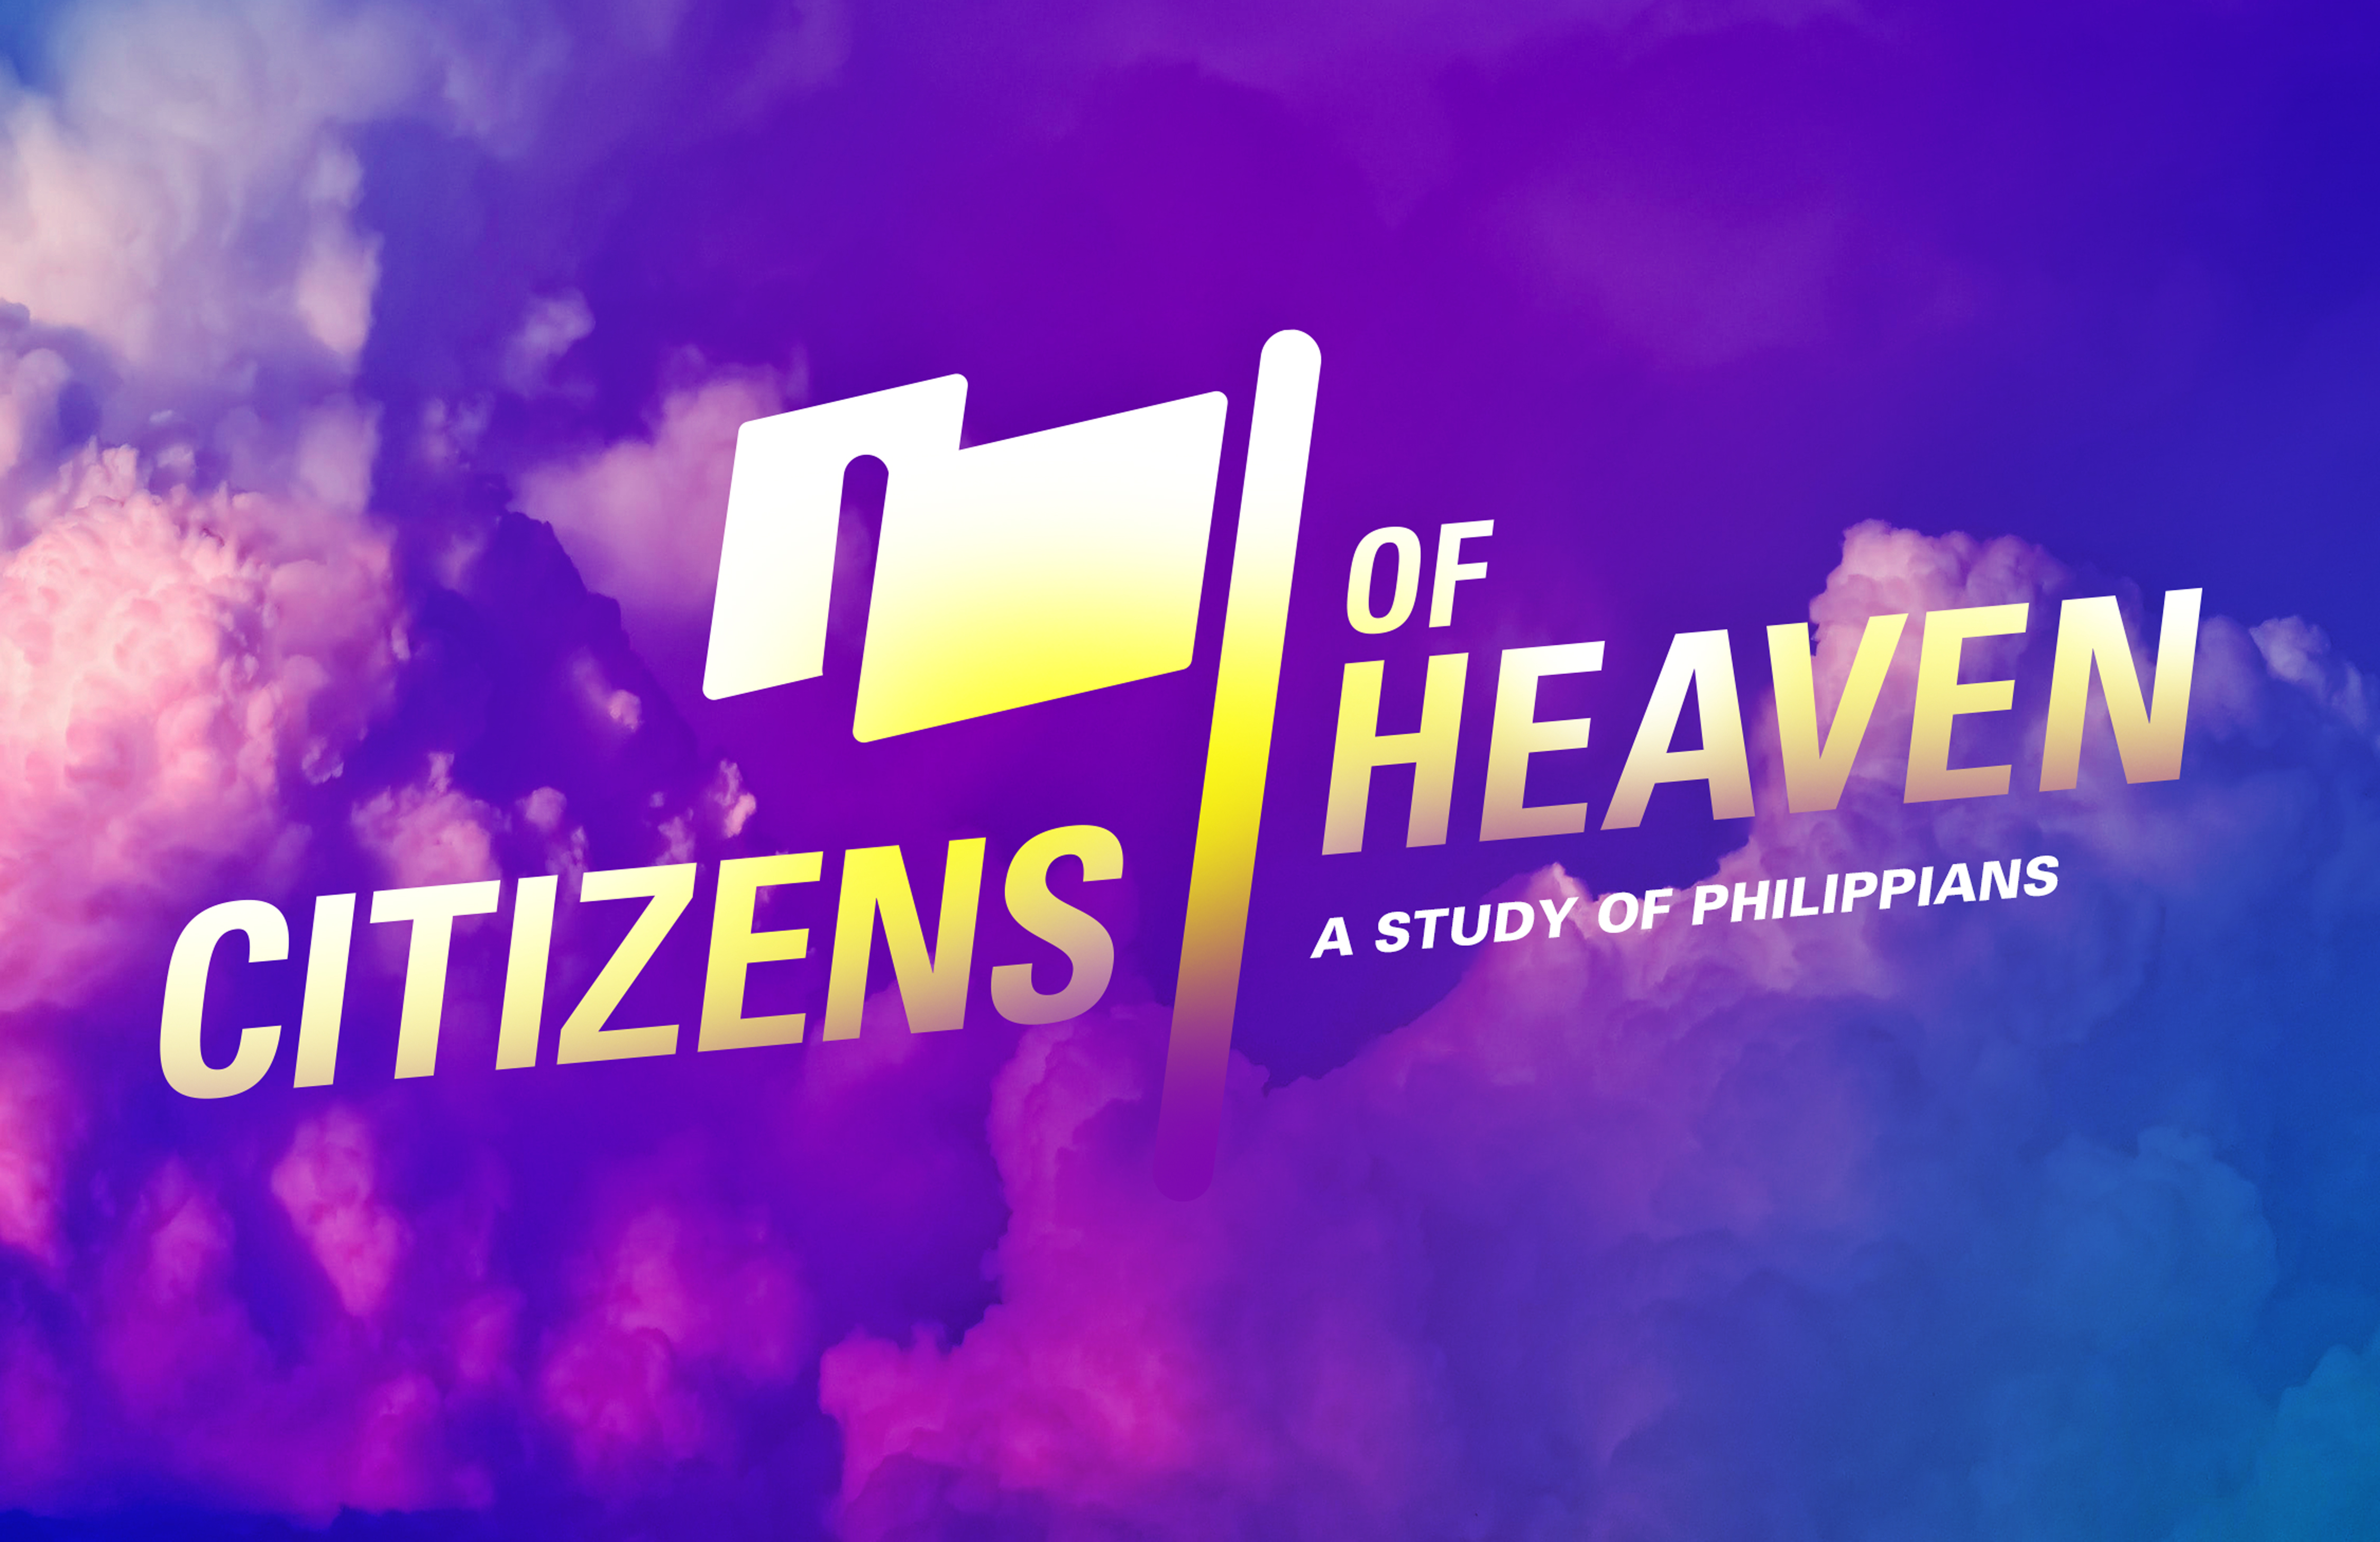 Citizens-of-Heaven-web image